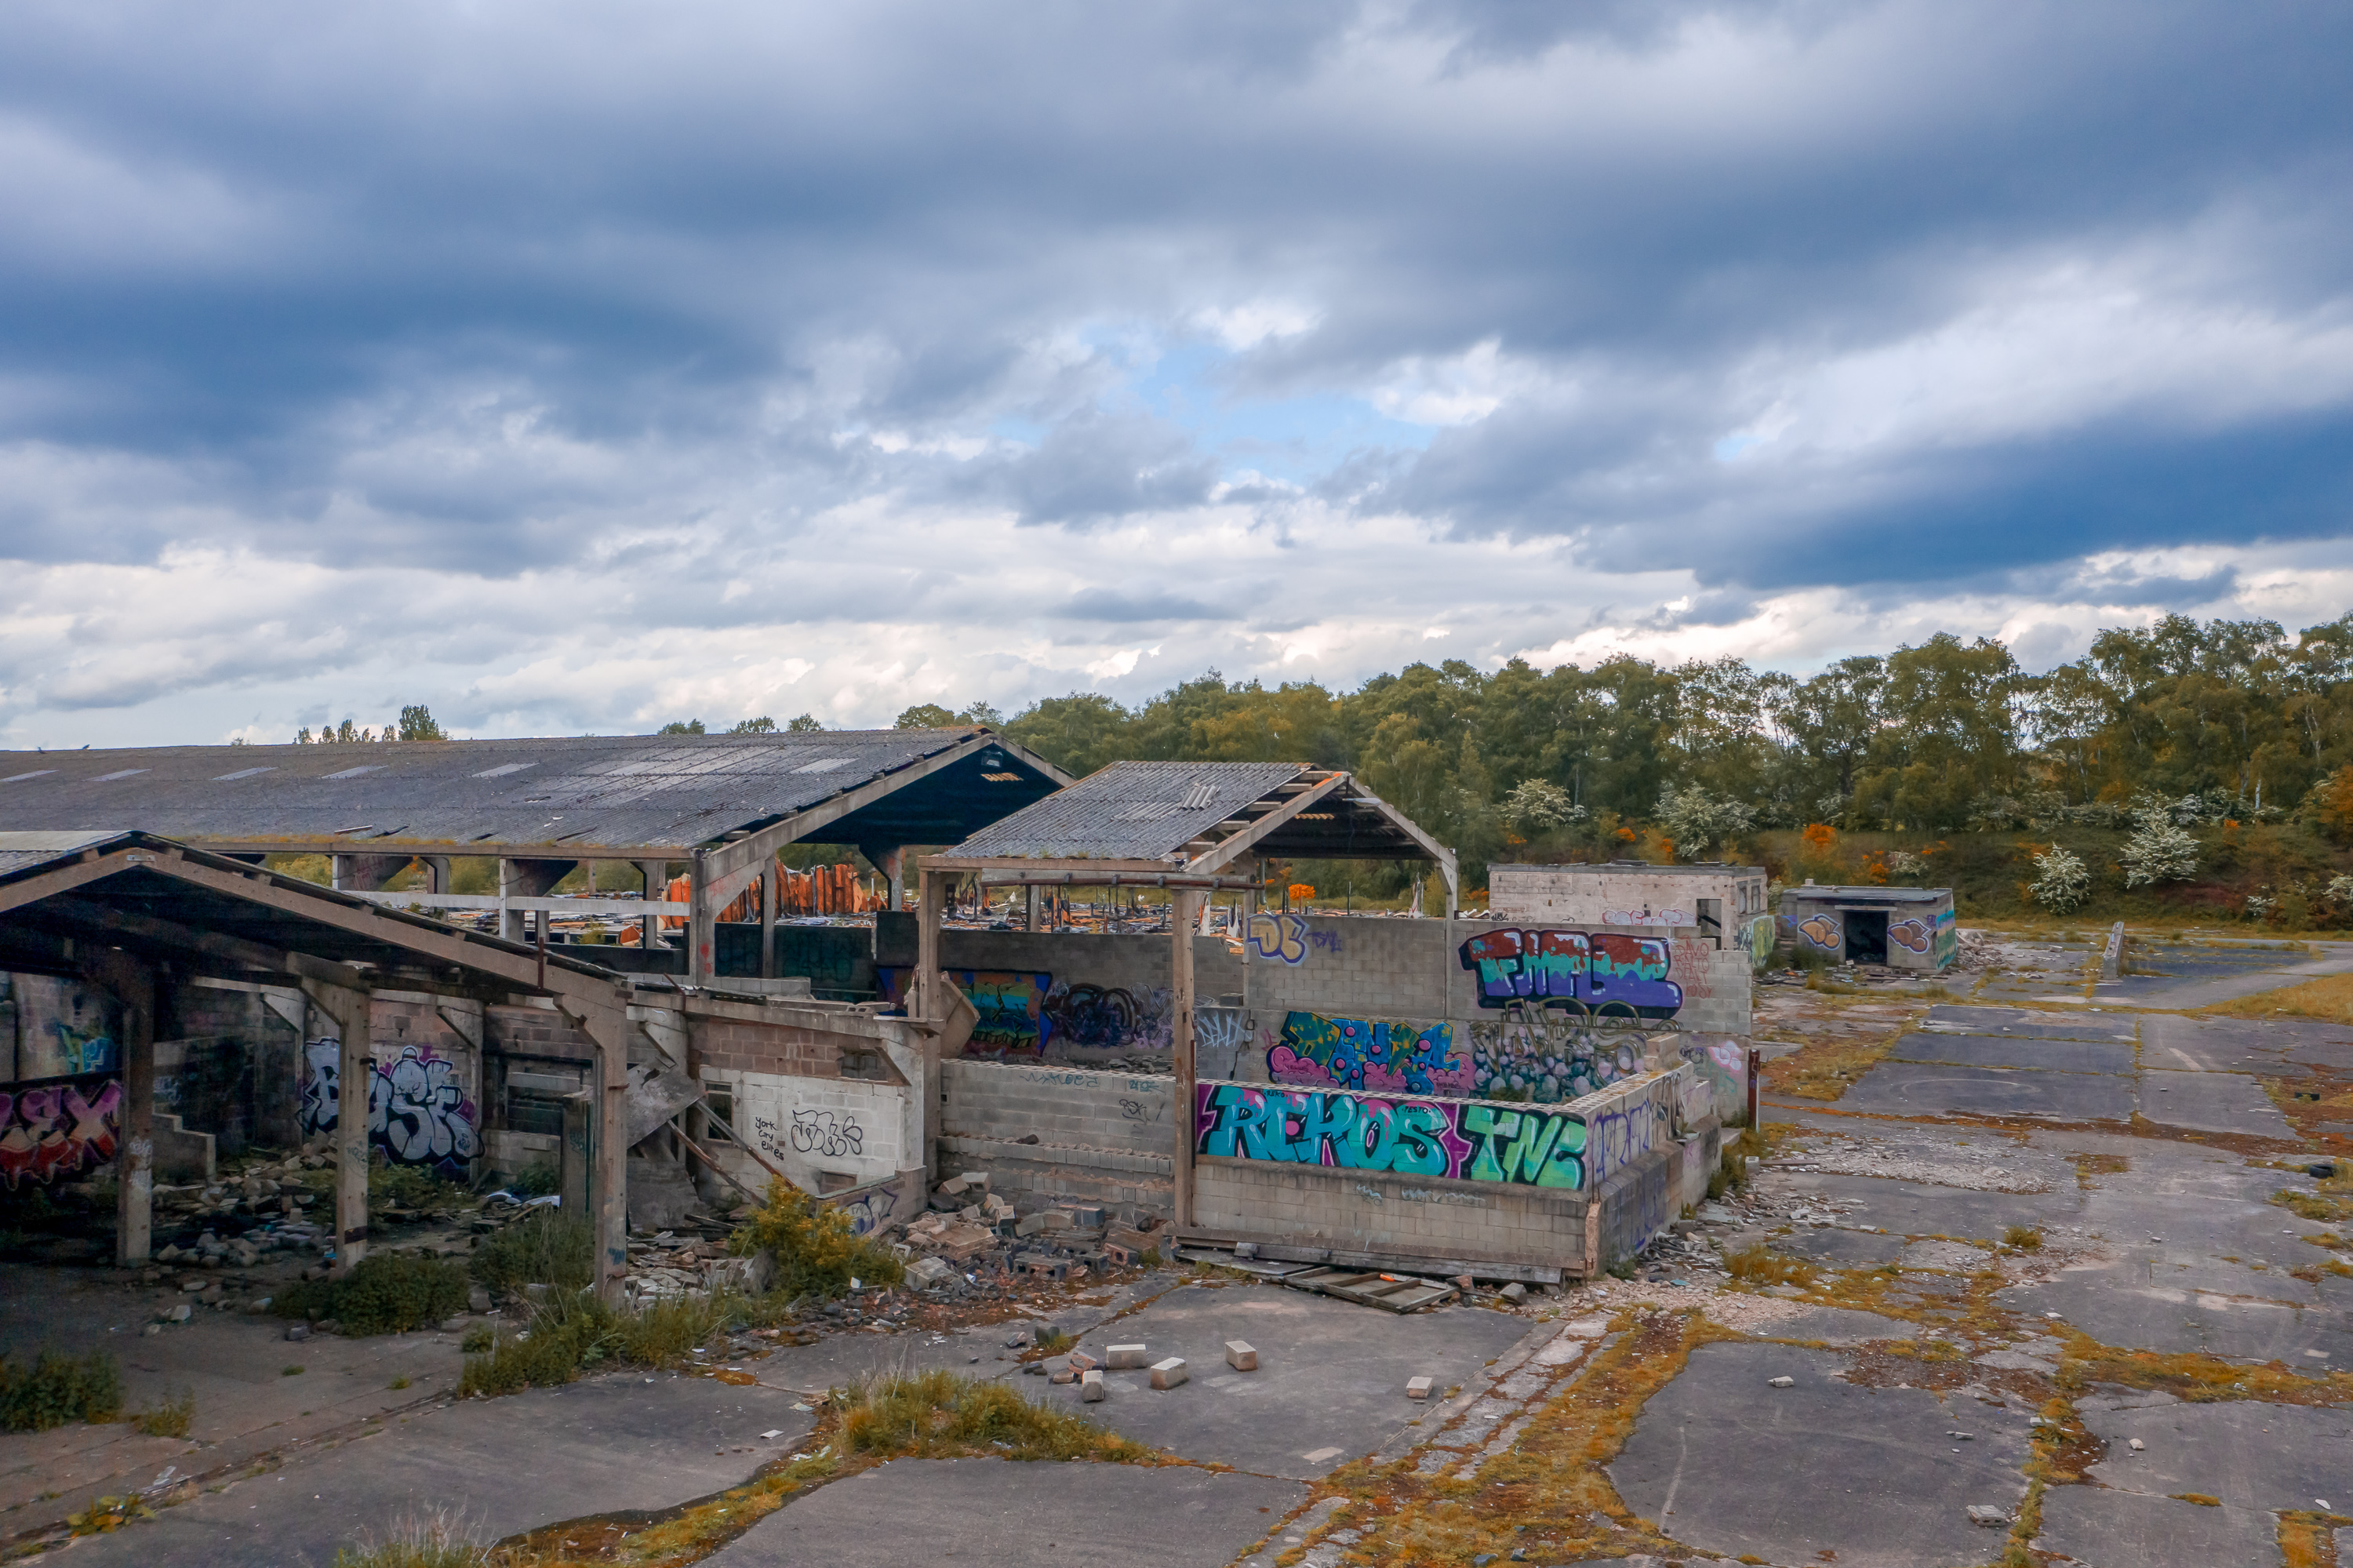 Camp 53 - Used as a Mushroom Farm, Buildings set on fire and vandalised after the farm closed